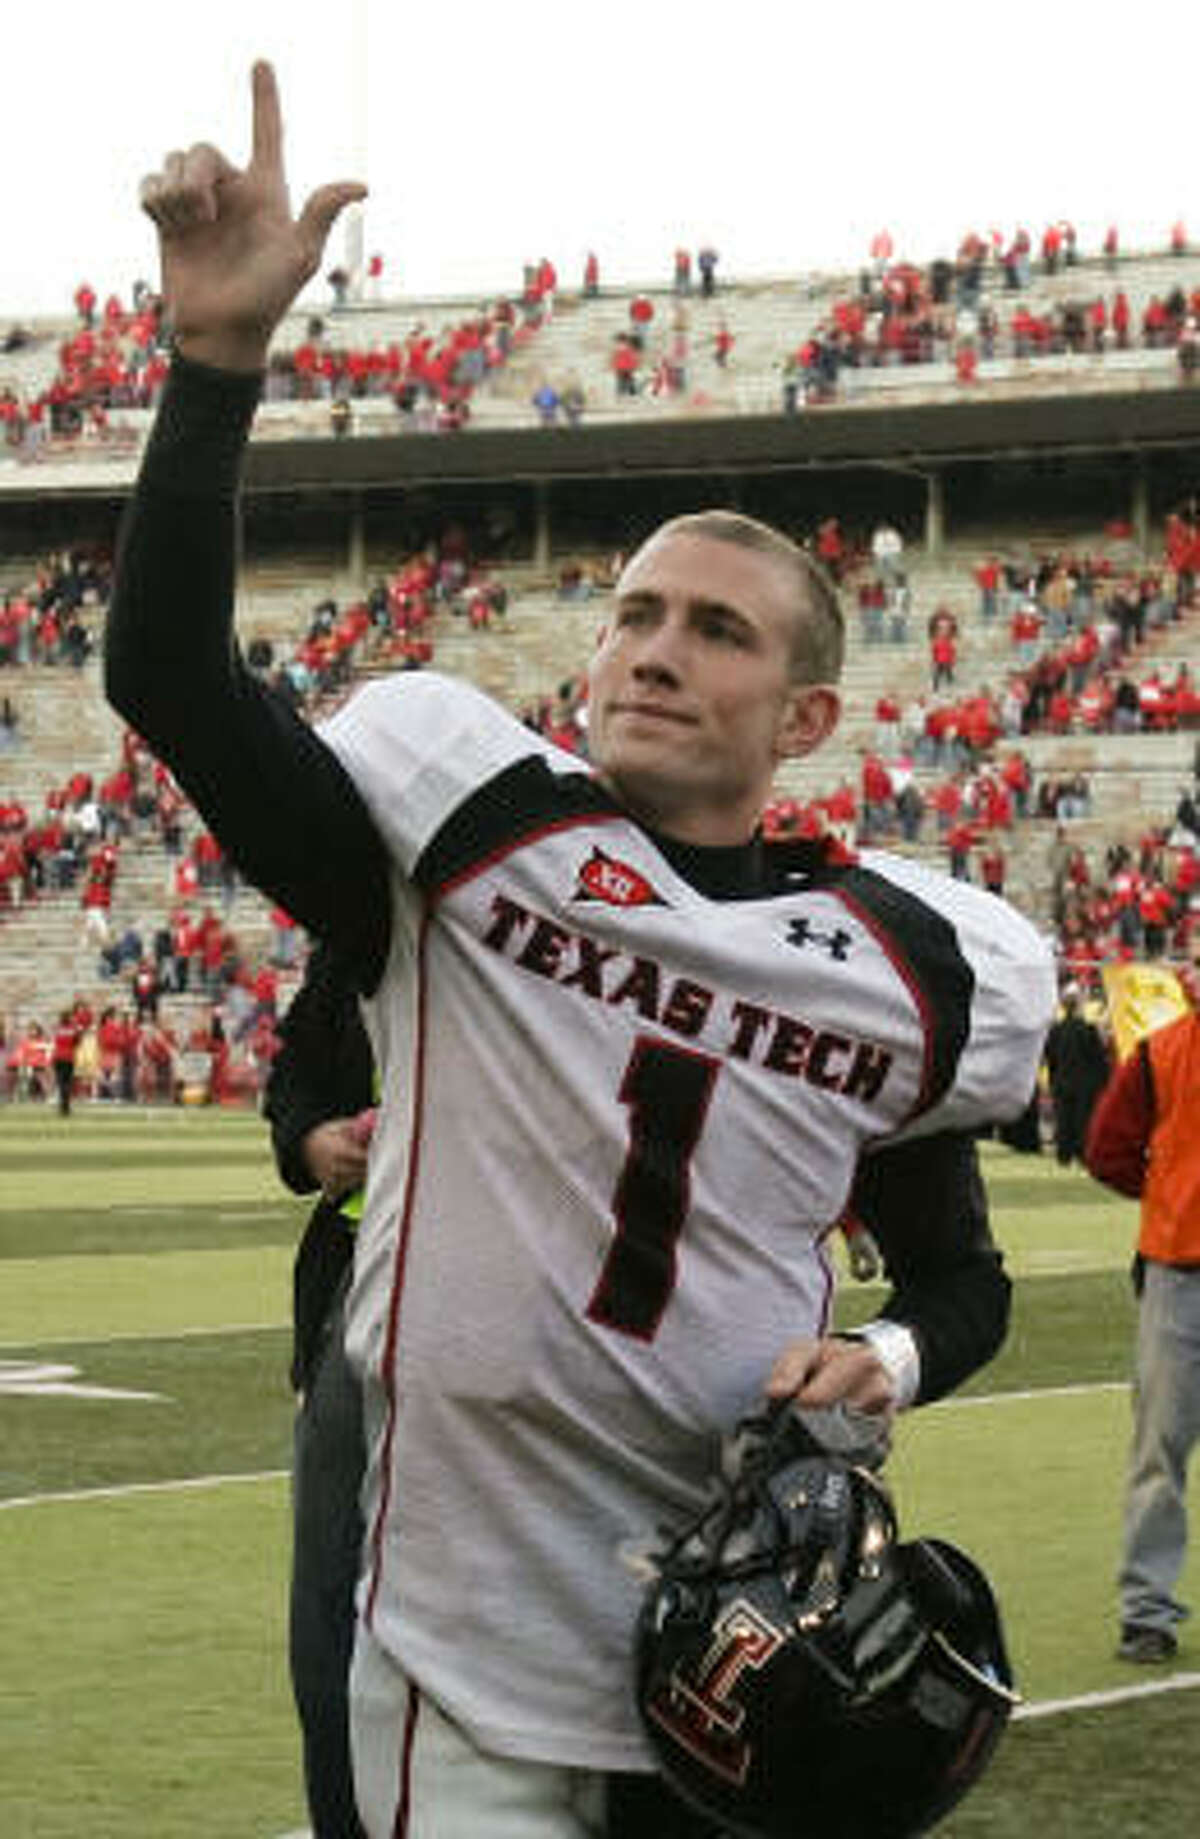 Texas Tech quarterback Steven Sheffield walks off the field after the Red Raiders' victory against Nebraska on Saturday in Lincoln, Neb. Sheffield completed 14 of his first 16 passes.